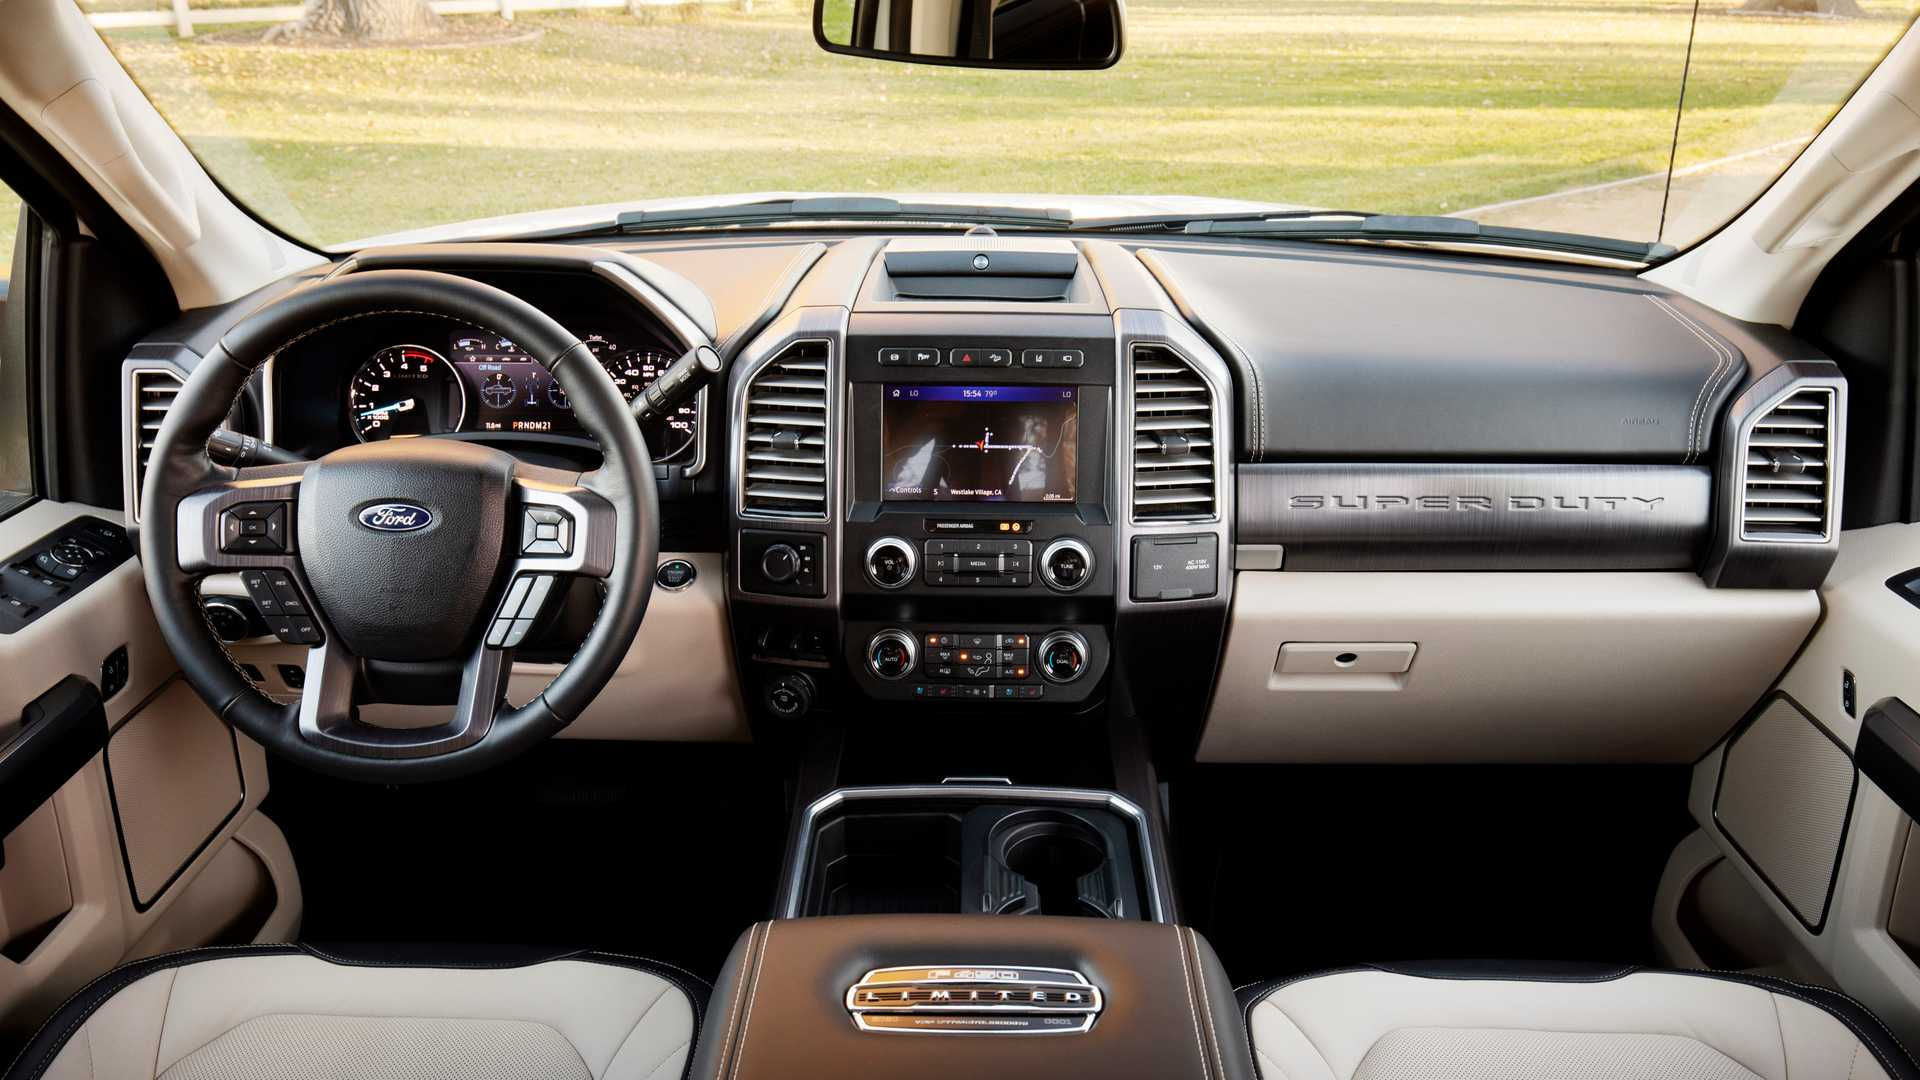 2015 - [Ford] F Series - Page 3 2020-ford-super-duty-interior